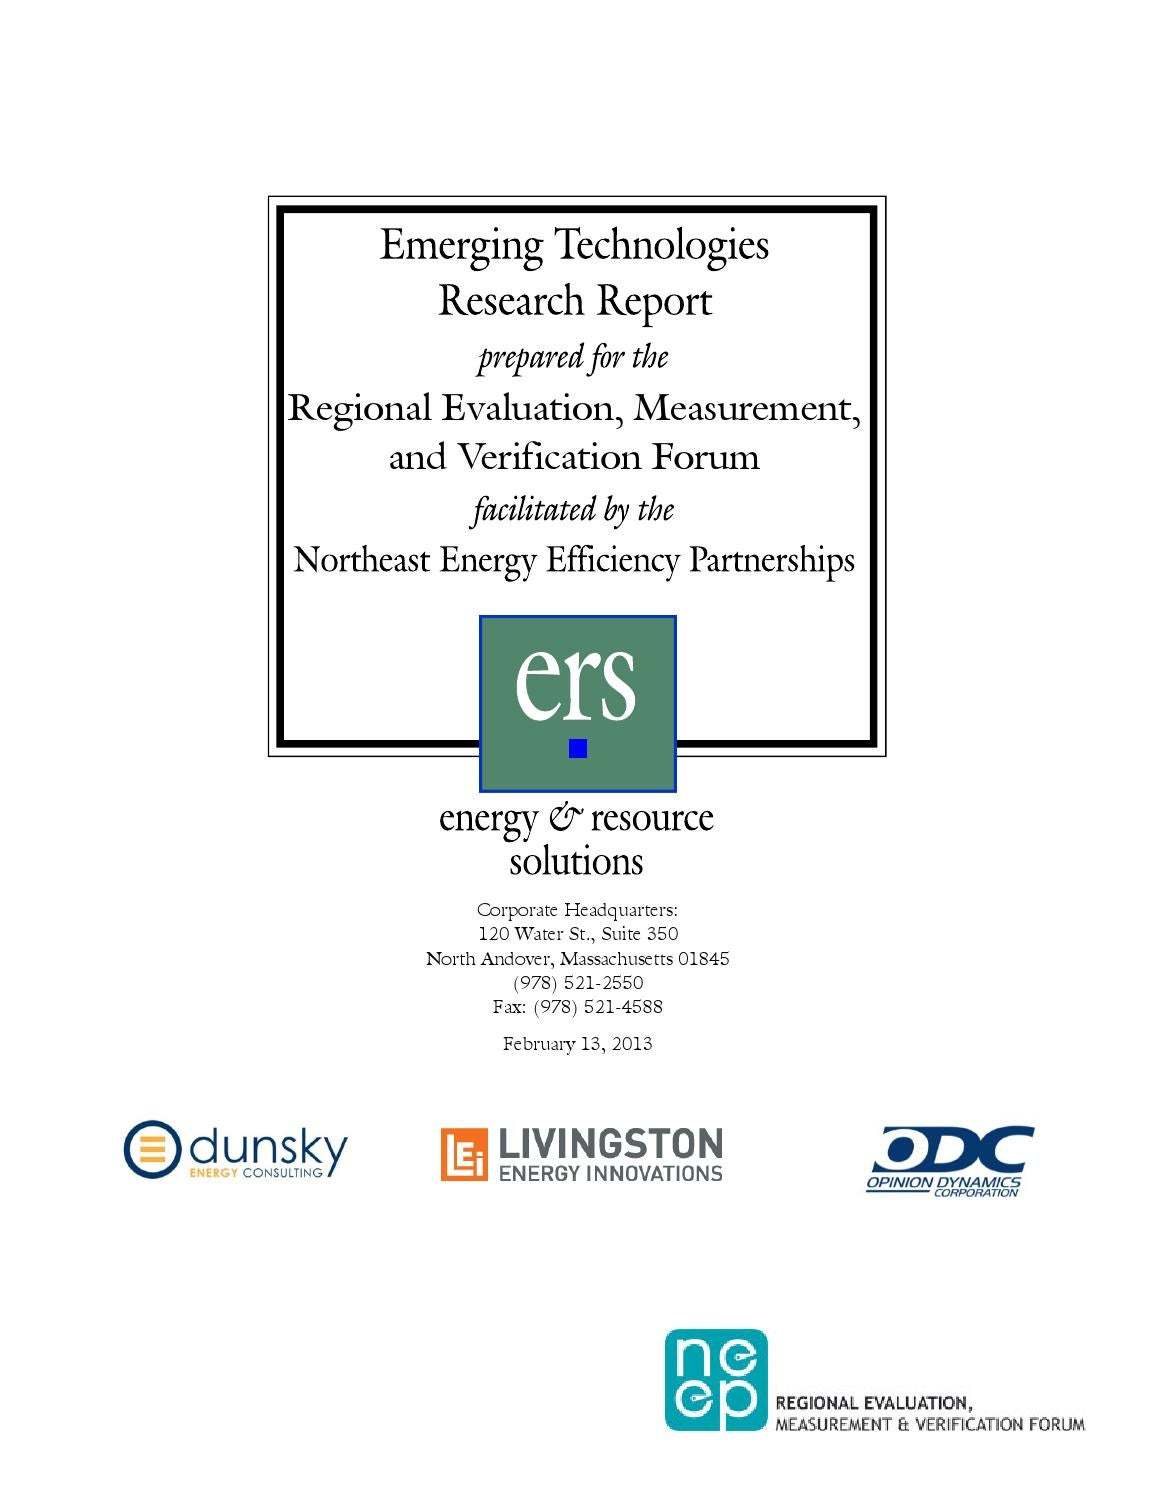 Emerging Technologies Research Report By Neep Energy Issuu Suddenlink Wiring Diagram